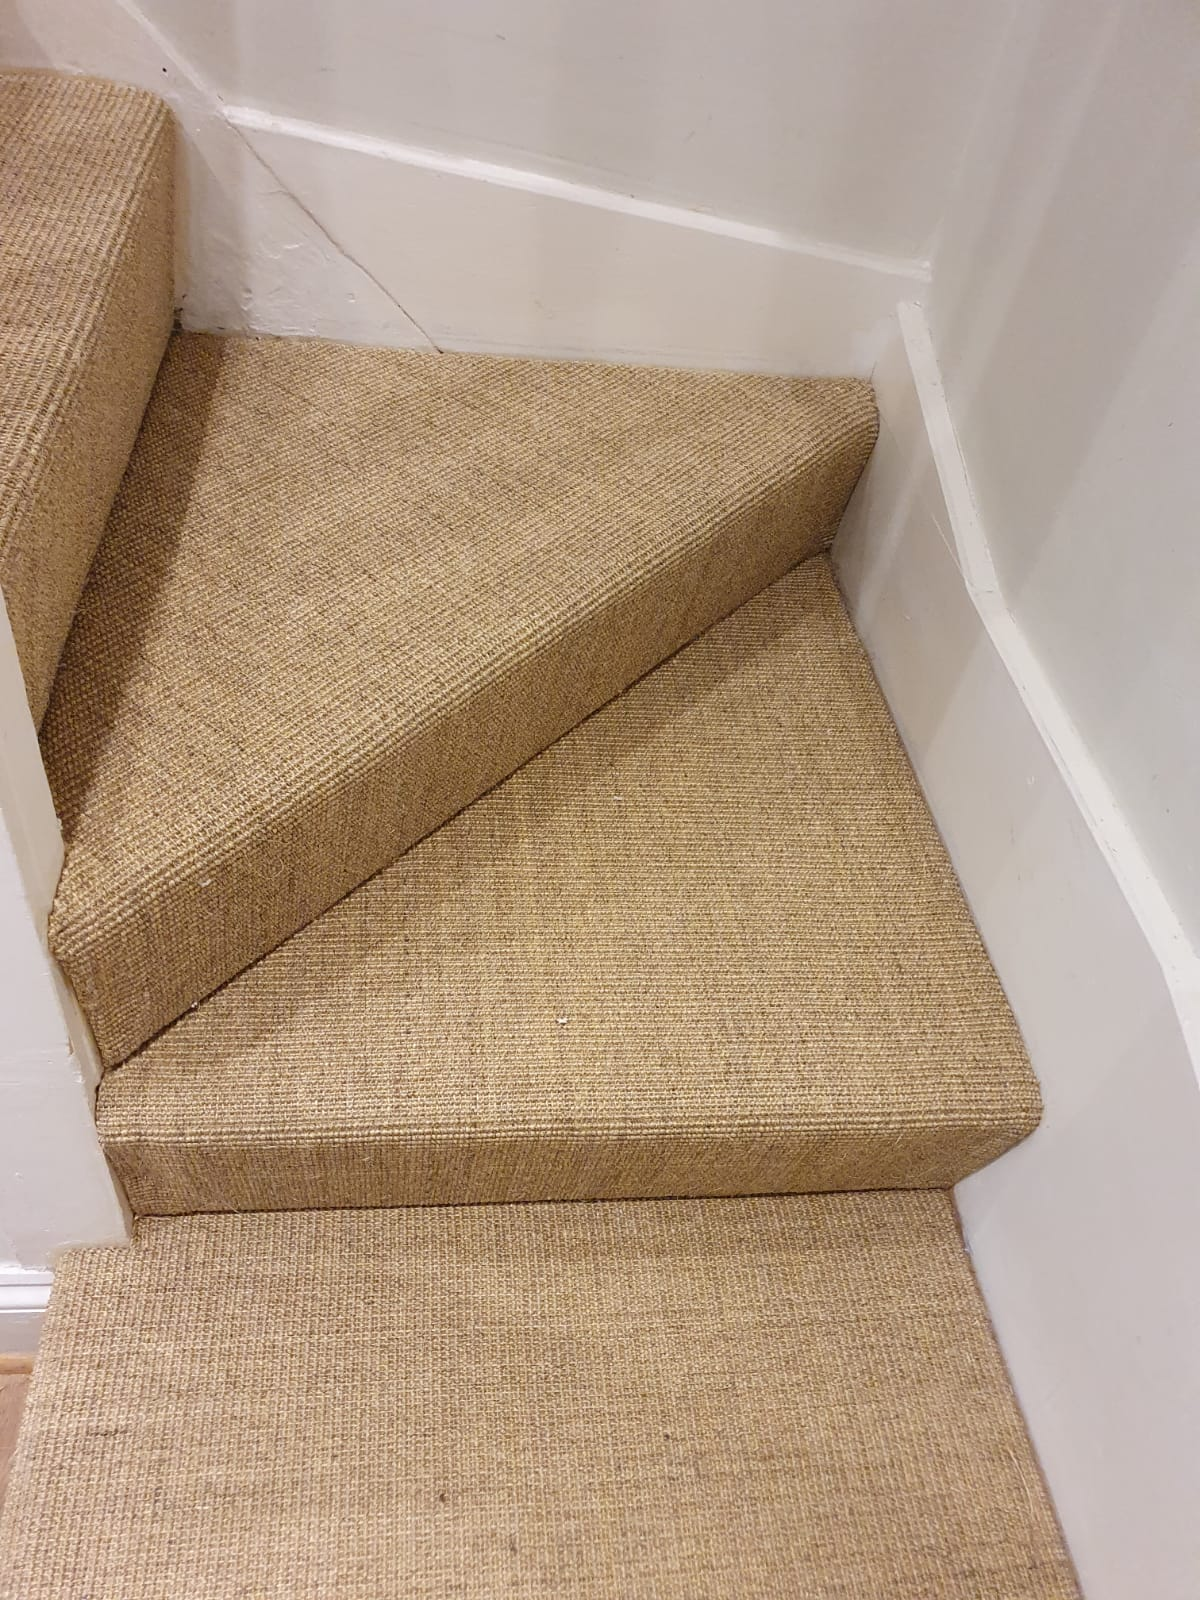 Sisal Carpet to Stairs in Farringdon 3